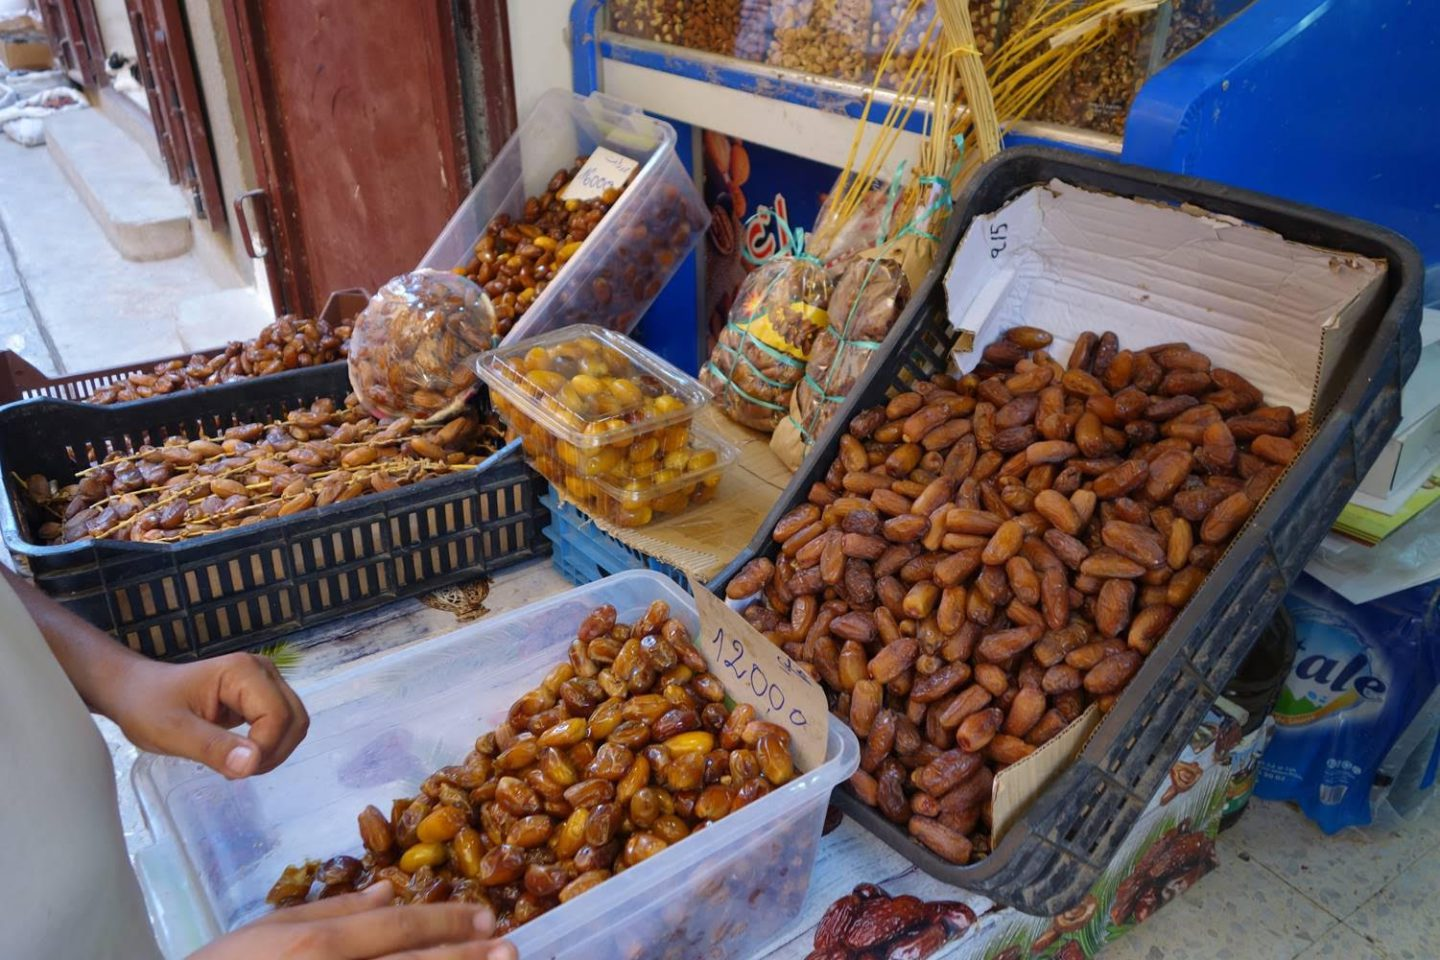 This Algerian entrepreneur turns unwanted dates into tasty treats | The Switchers